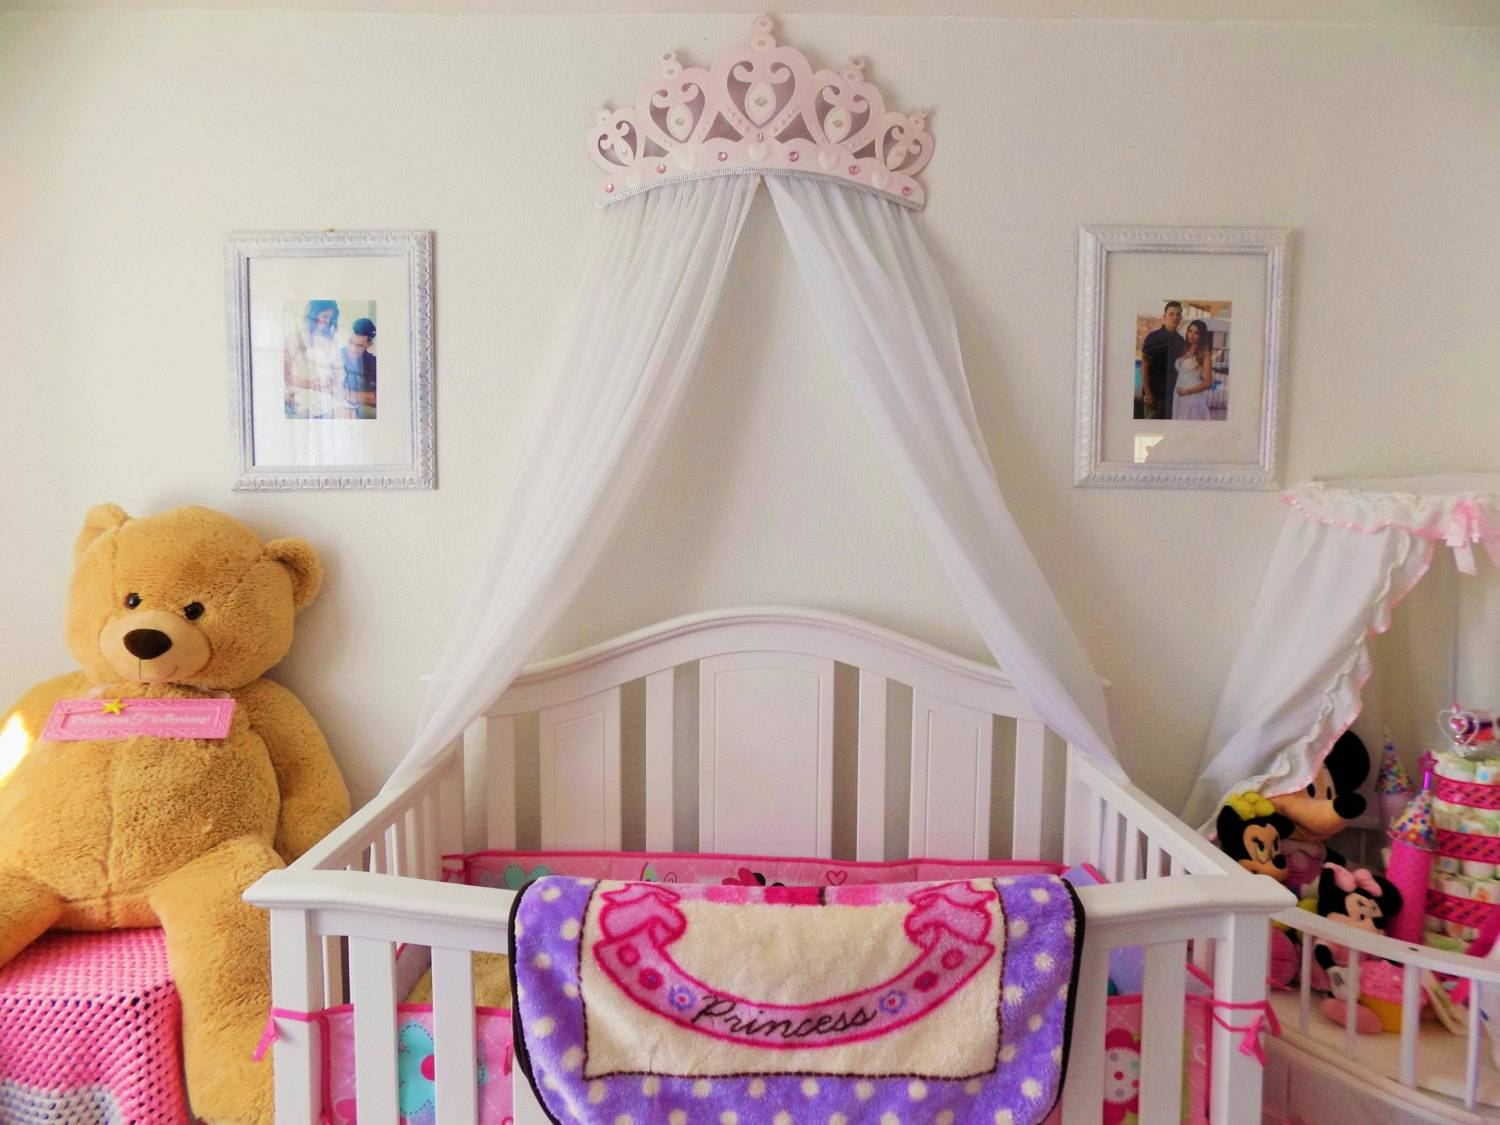 Crib Canopy Bed Crown Pink Princess Wall Decor Throughout Recent 3d Princess Crown Wall Art Decor (View 14 of 20)